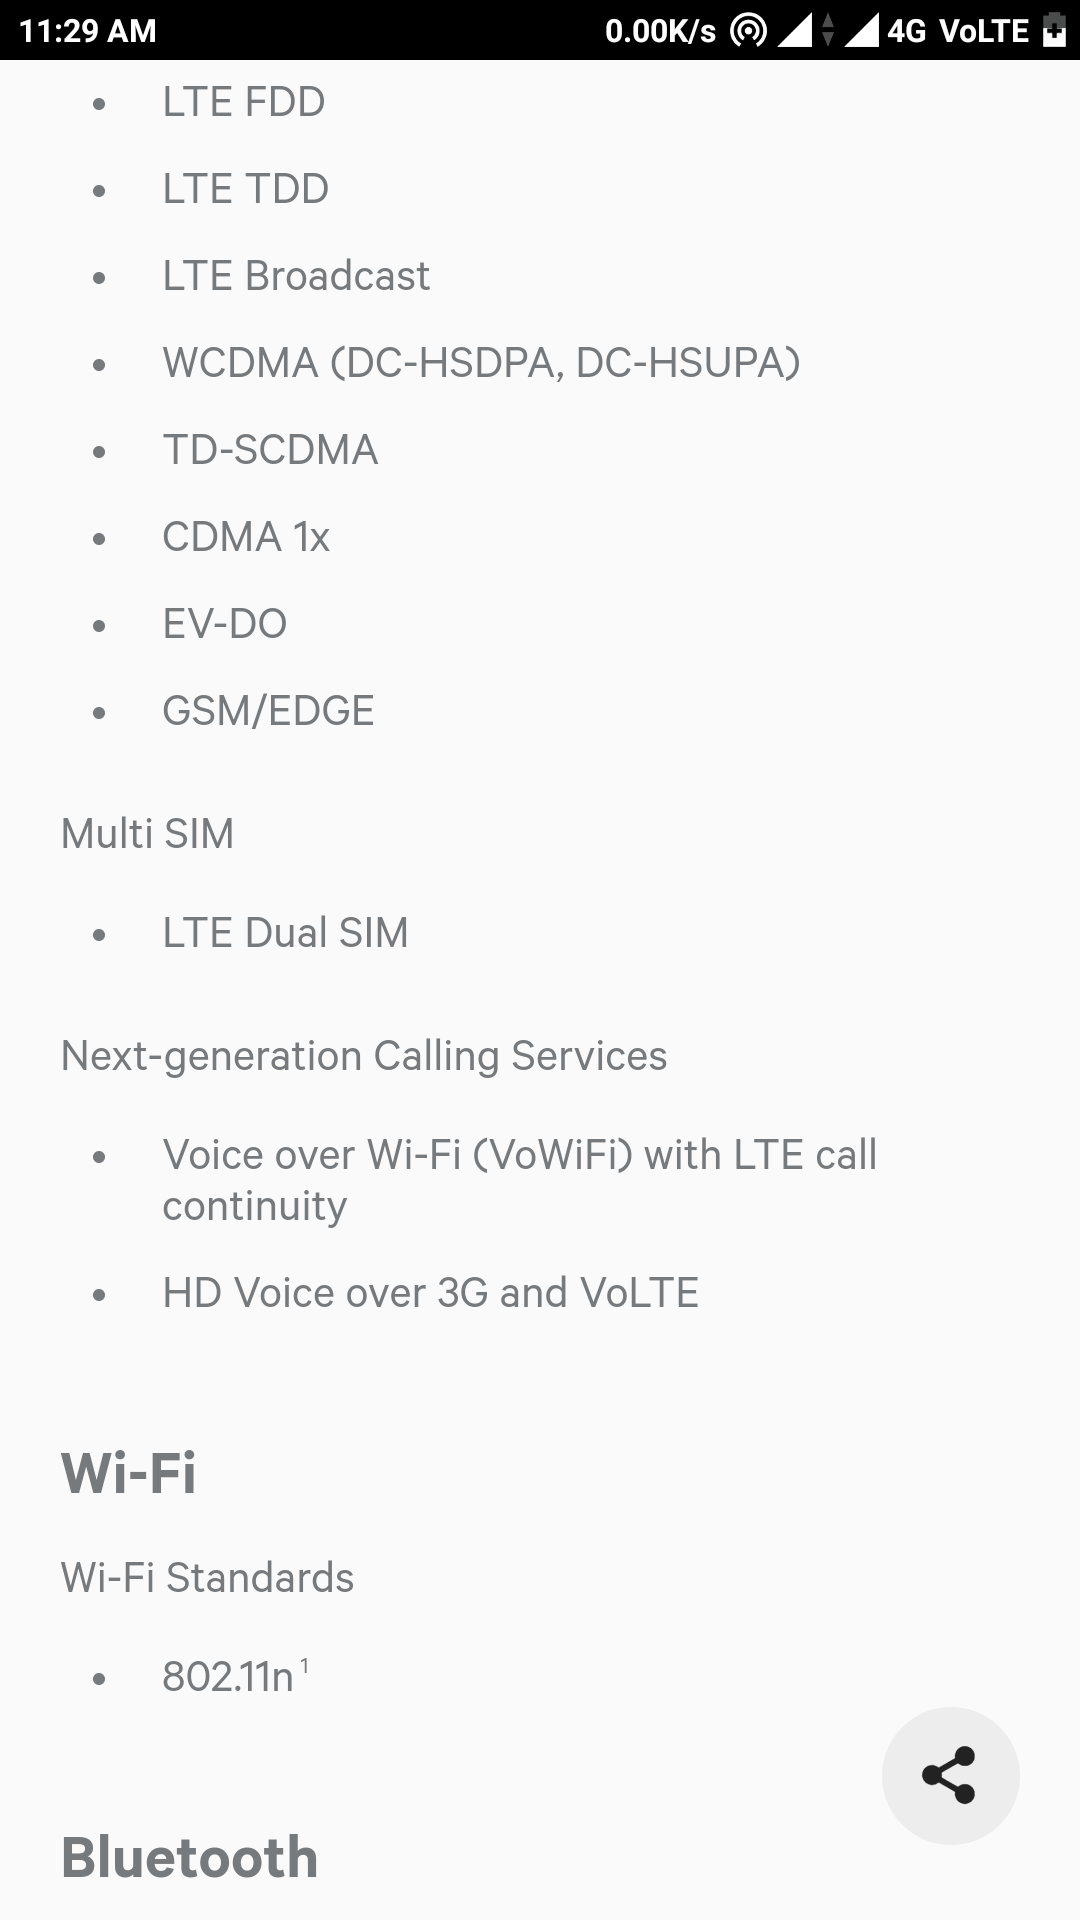 Is it possible to convert Honor 4X to VoLTE by rooting? - Quora